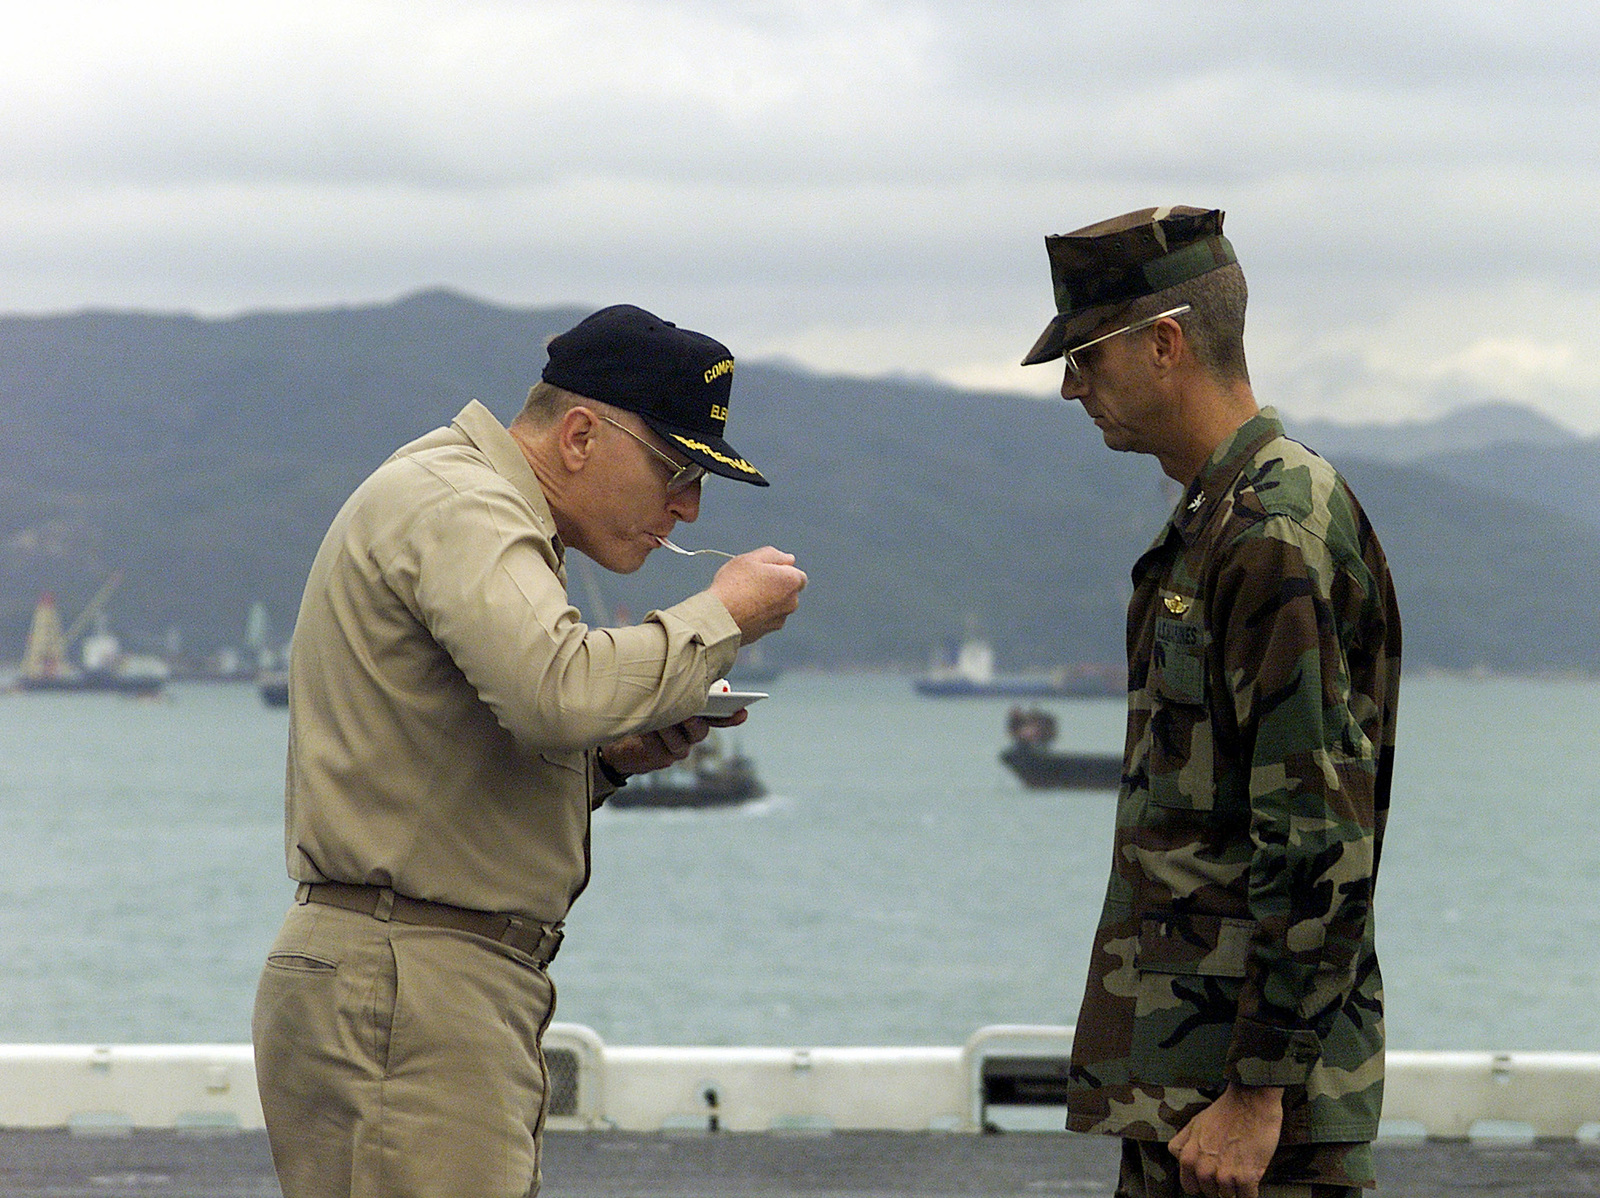 US Navy Captain (CAPT) F. Lee Touchberry, watches carefully as US Marine Corps Colonel (COL), James Lowe, Commanding Officer of the 31st Marine Expeditionary Unit (MEU), takes a bite from the Marine Corps 225th birthday cake. The officers are on the flight deck of the USS Essex (LHD 2), while in Hong Kong, China. US Marine and Naval Forces Unit spent two months participating in various training operations on and off the coast of Okinawa, Japan, Sasebo, Japan, Pohang, Korea, and Hong Kong, China